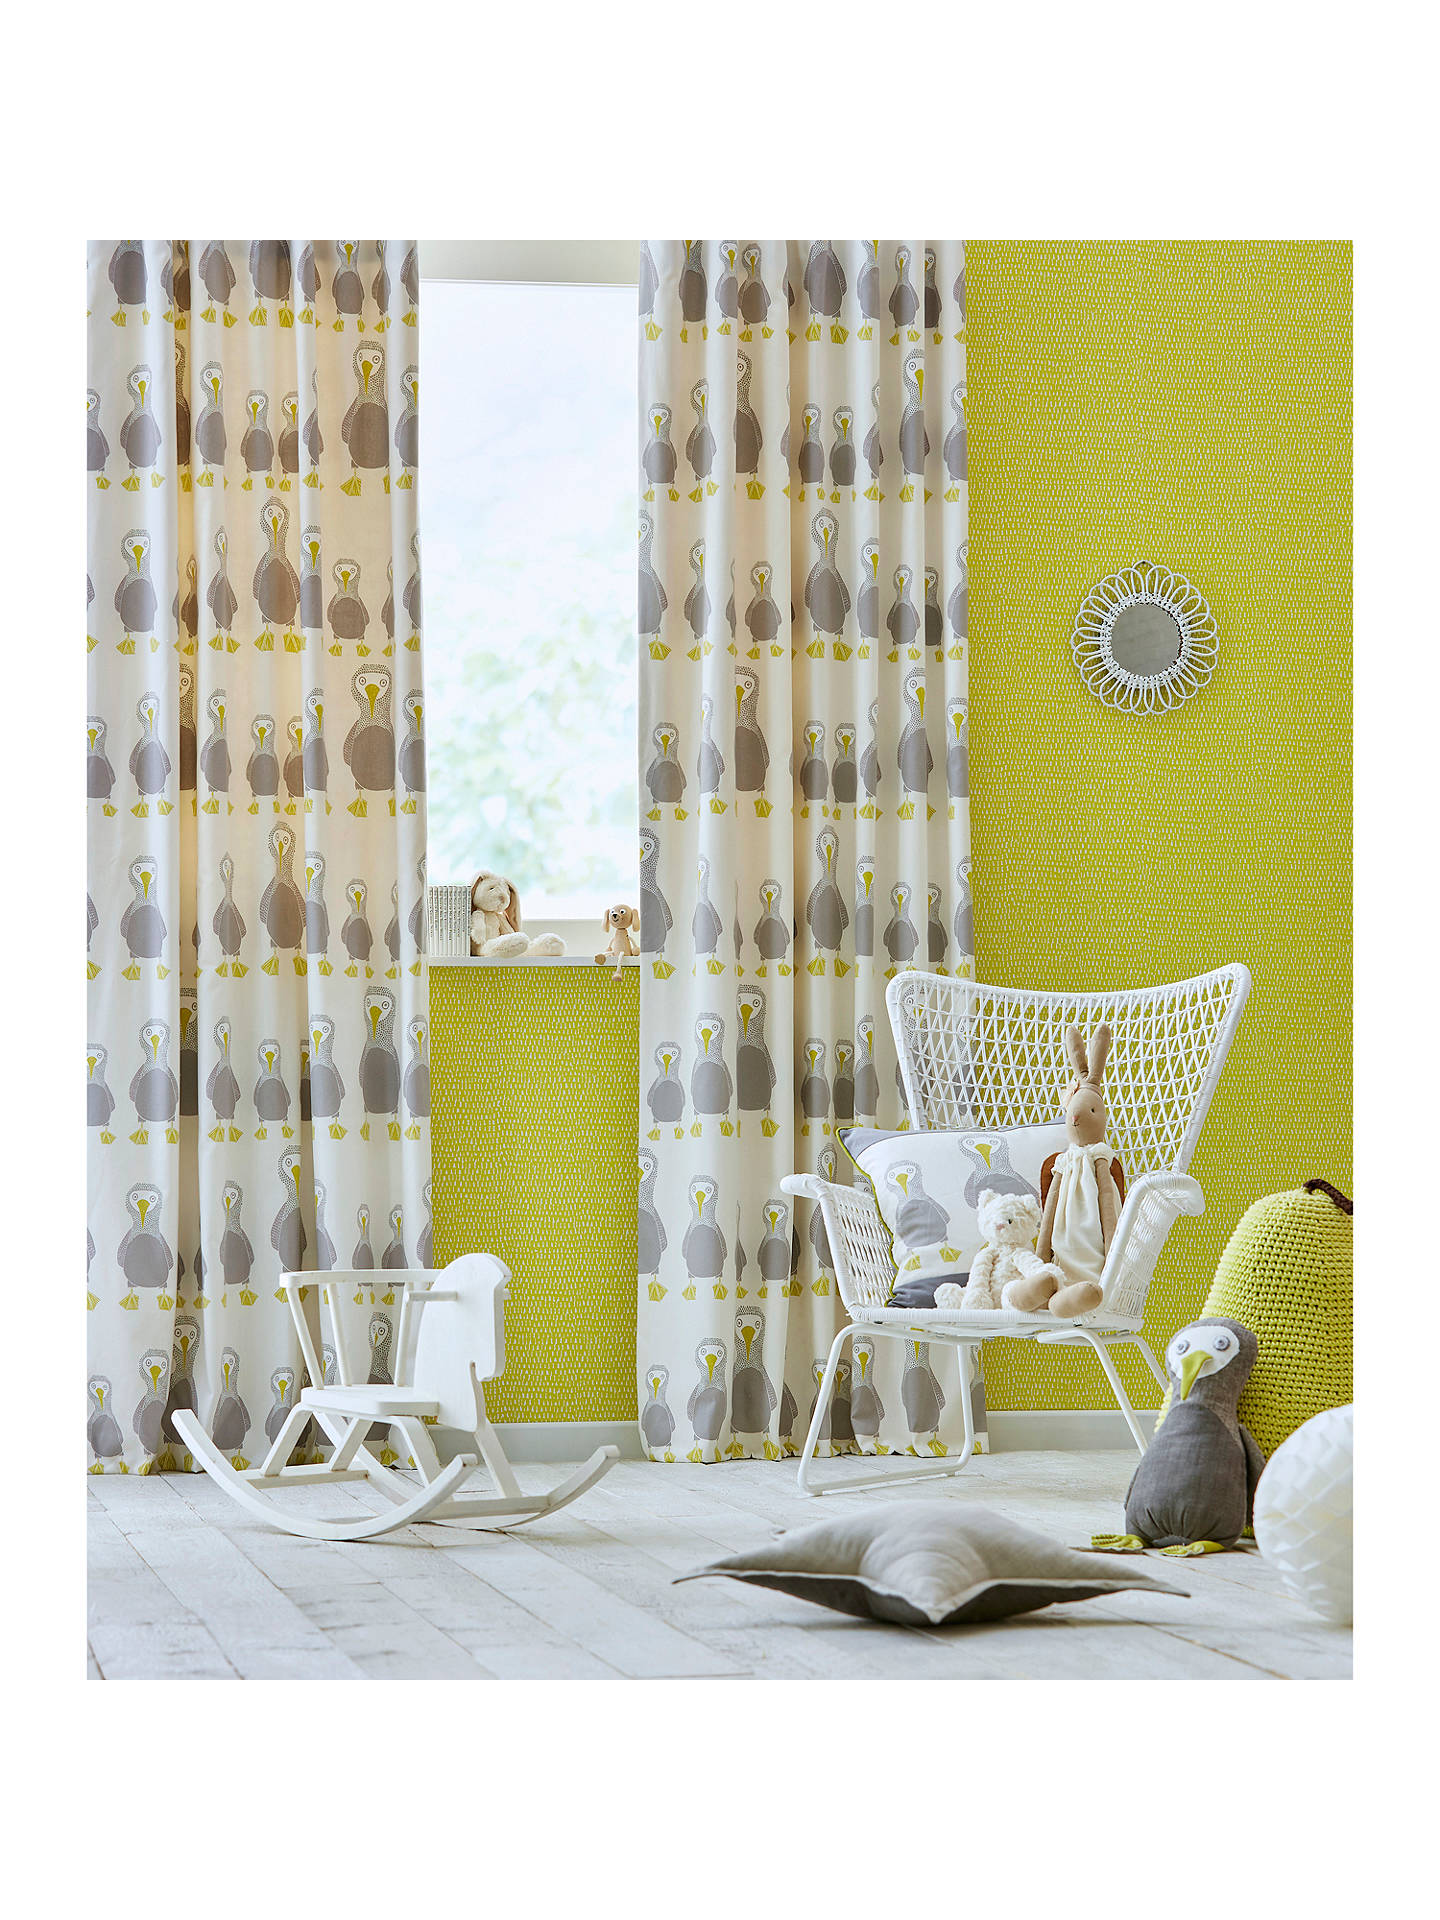 BuyScion Totak Wallpaper, Citrus, 111274 Online at johnlewis.com